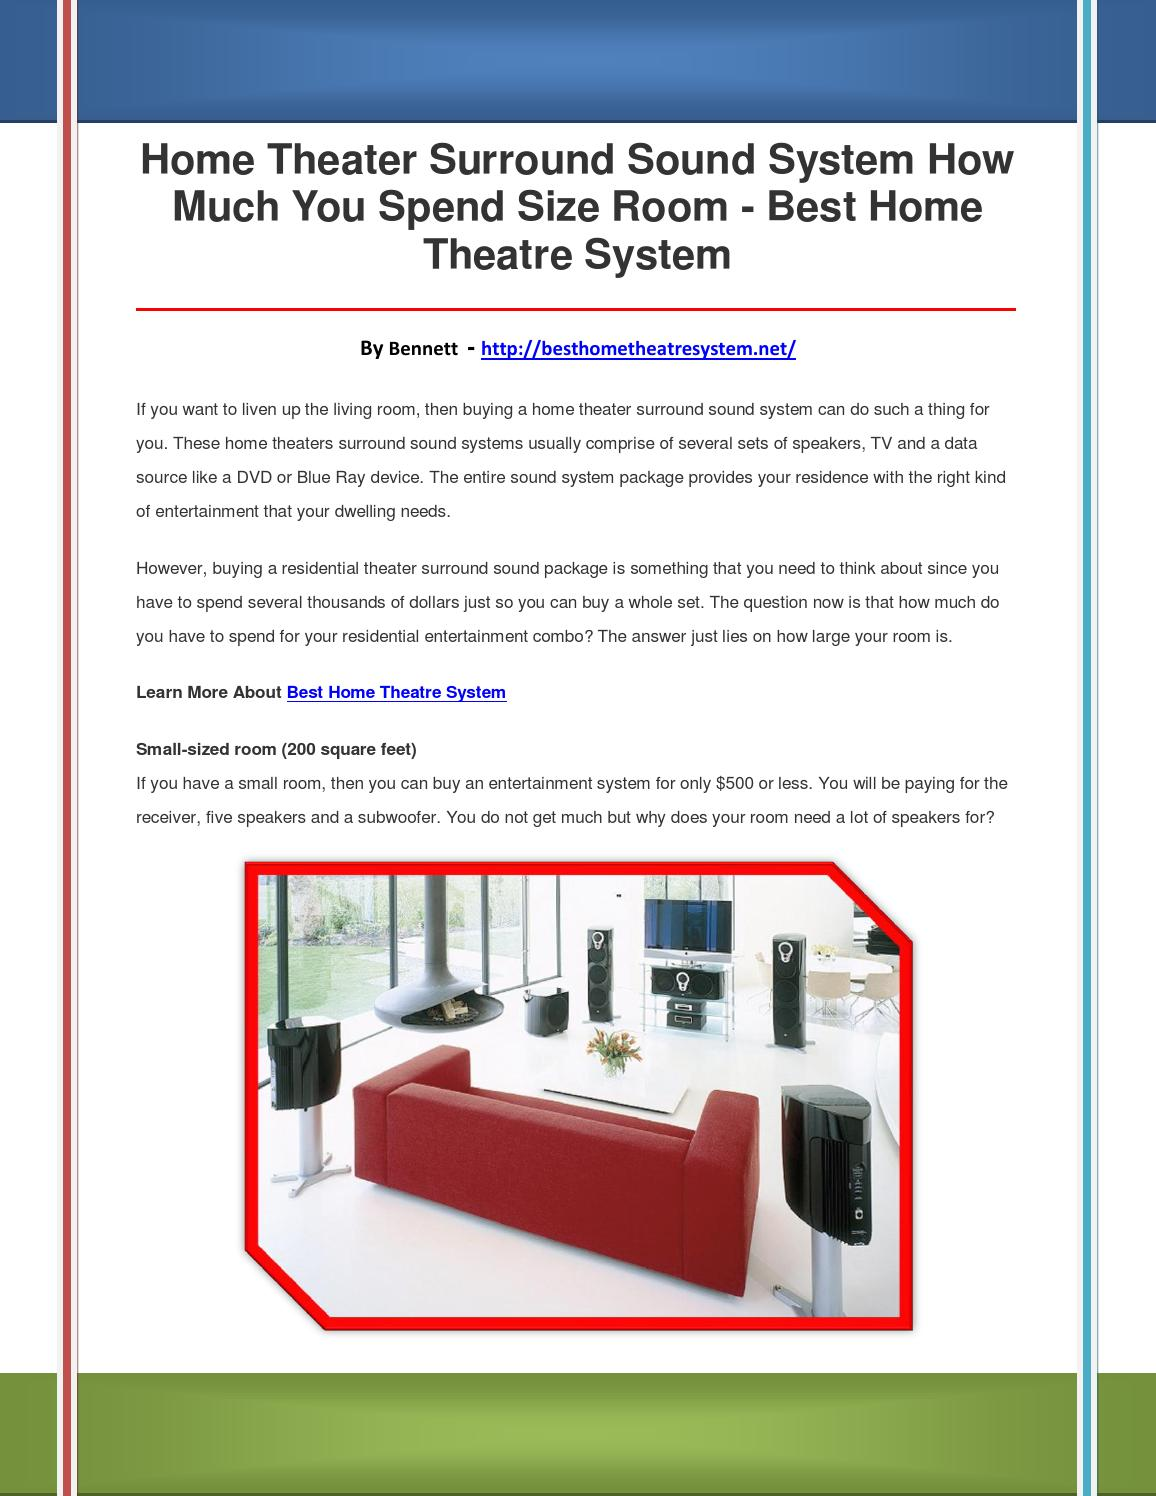 Best Home Theatre System By Werfdcfghj Issuu